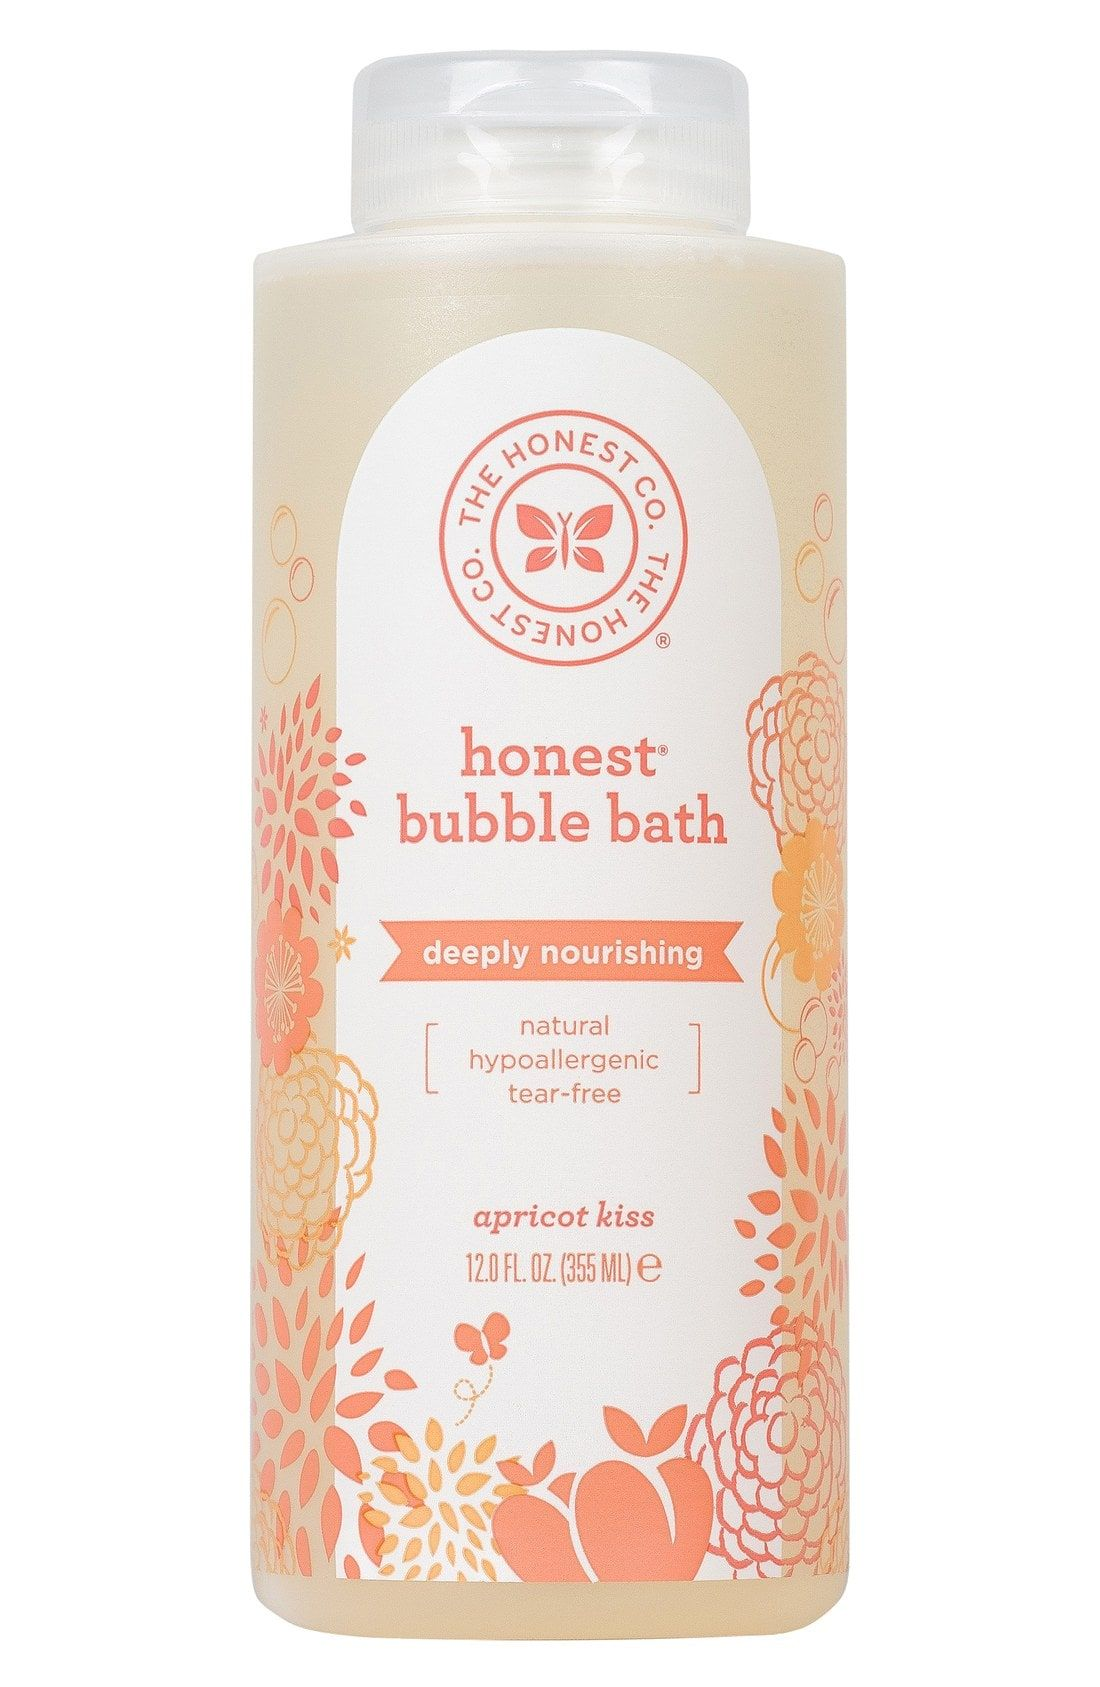 10 Bubble Bath Products That Are Perfect for a Relaxing Night In